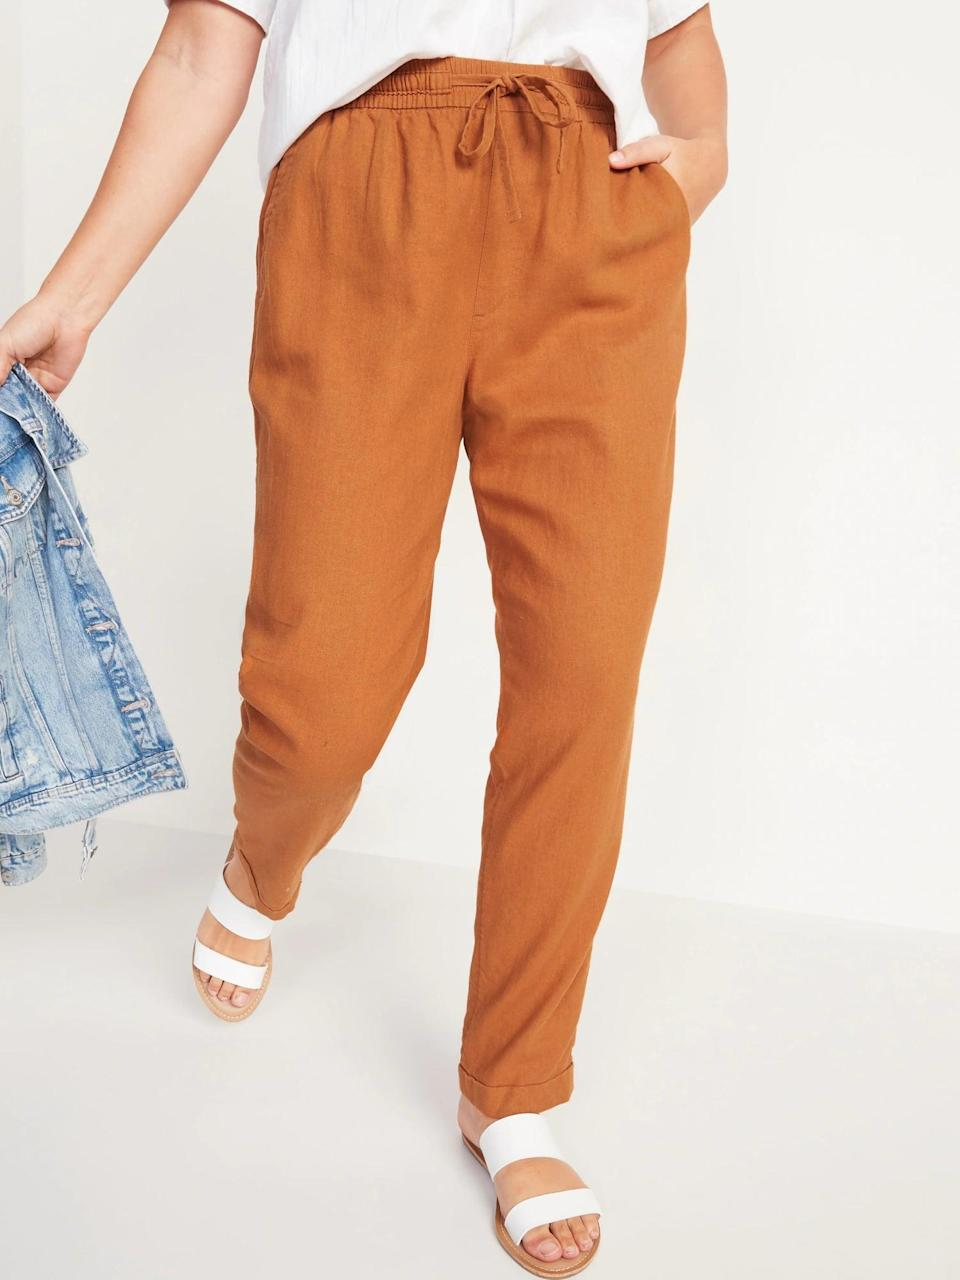 <p>With a button-down shirt up top, the burnt-orange <span>Old Navy High-Waisted Linen-Blend Straight Cropped Pants</span> ($30, originally $35) result in a polished look (but they'd also look great with a tee and slip-on shoes).</p>